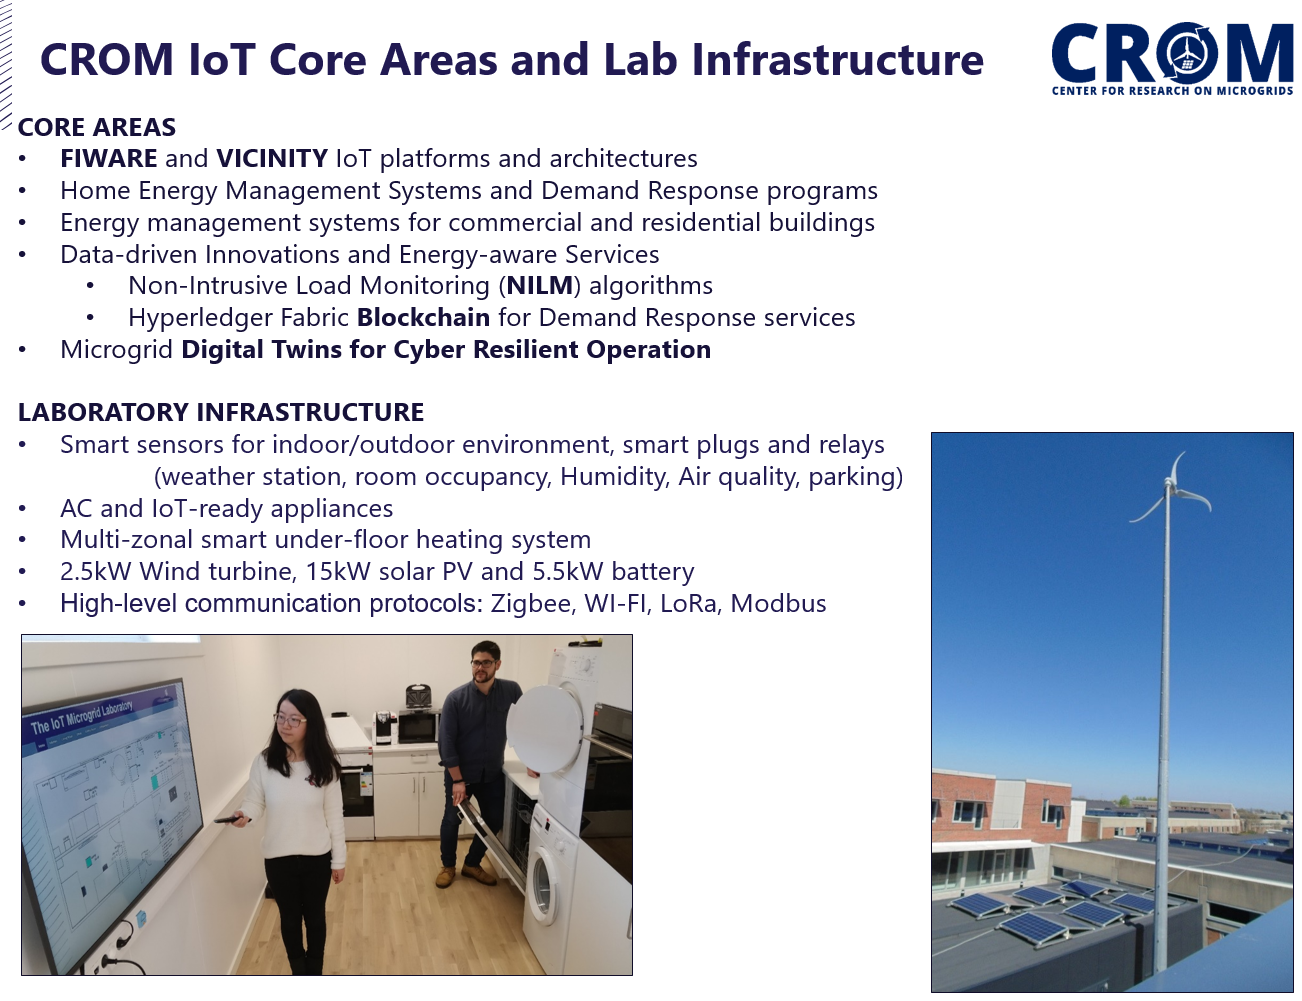 CROM IoT Core Areas and Facilities